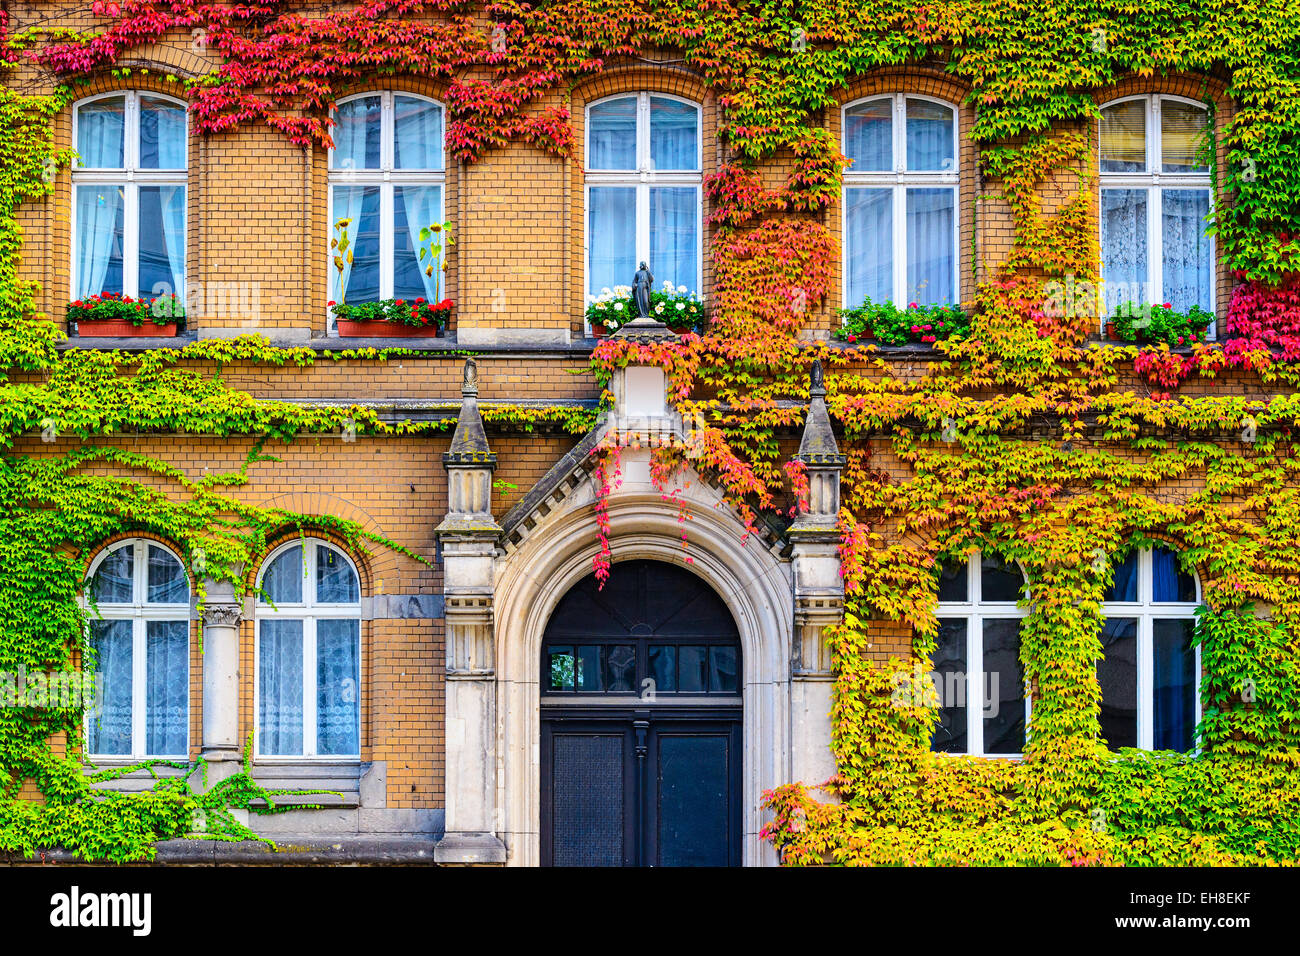 Vine covered building facade in Berlin, Germany. - Stock Image